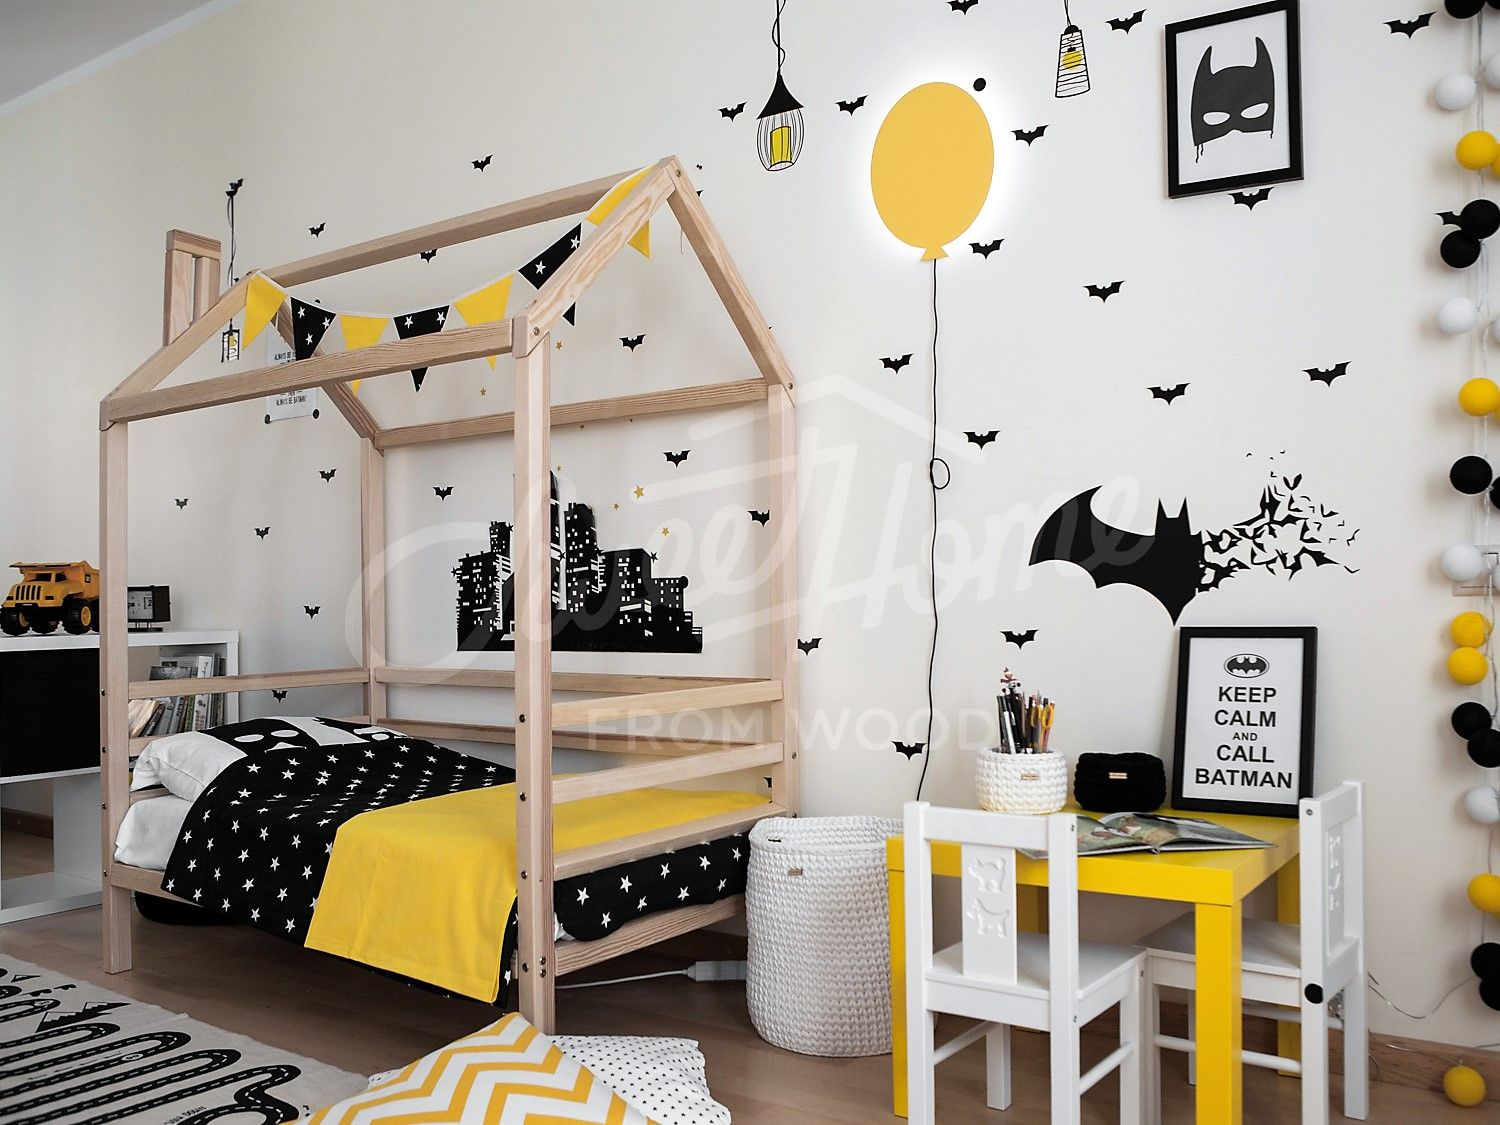 Kid bed house is floor bed for children in 2018 | HOUSE BED ...